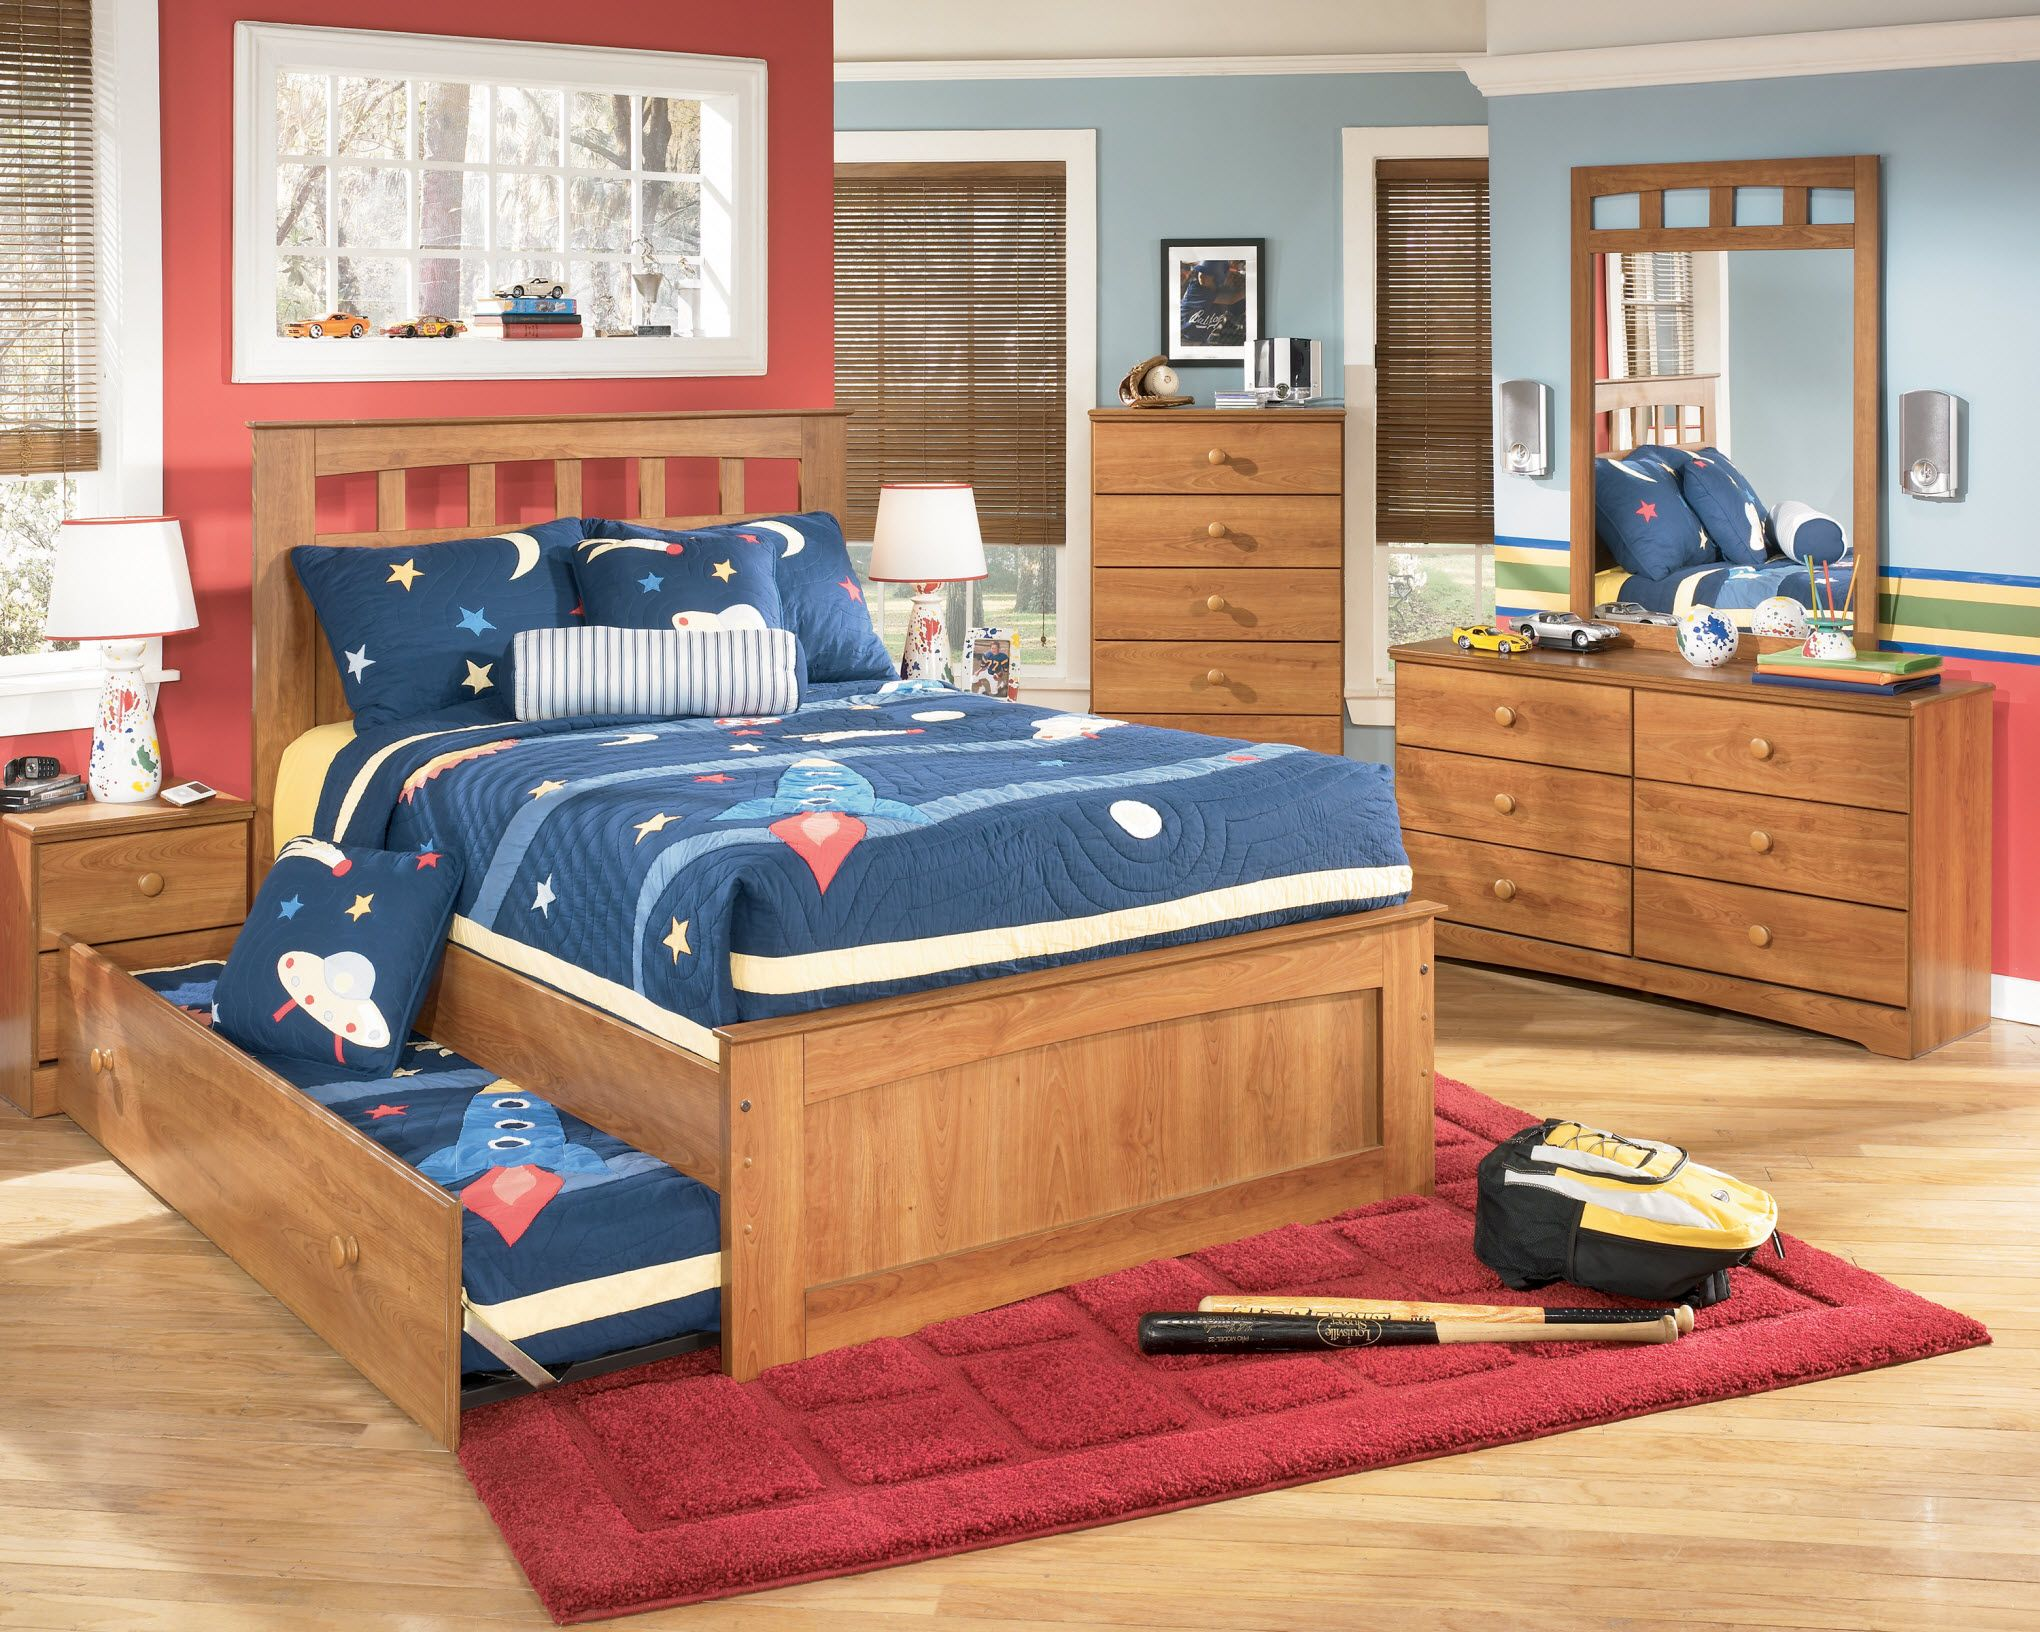 Best Images About Kids Beds Bedroom Stuff On Pinterest - Kids bedroom